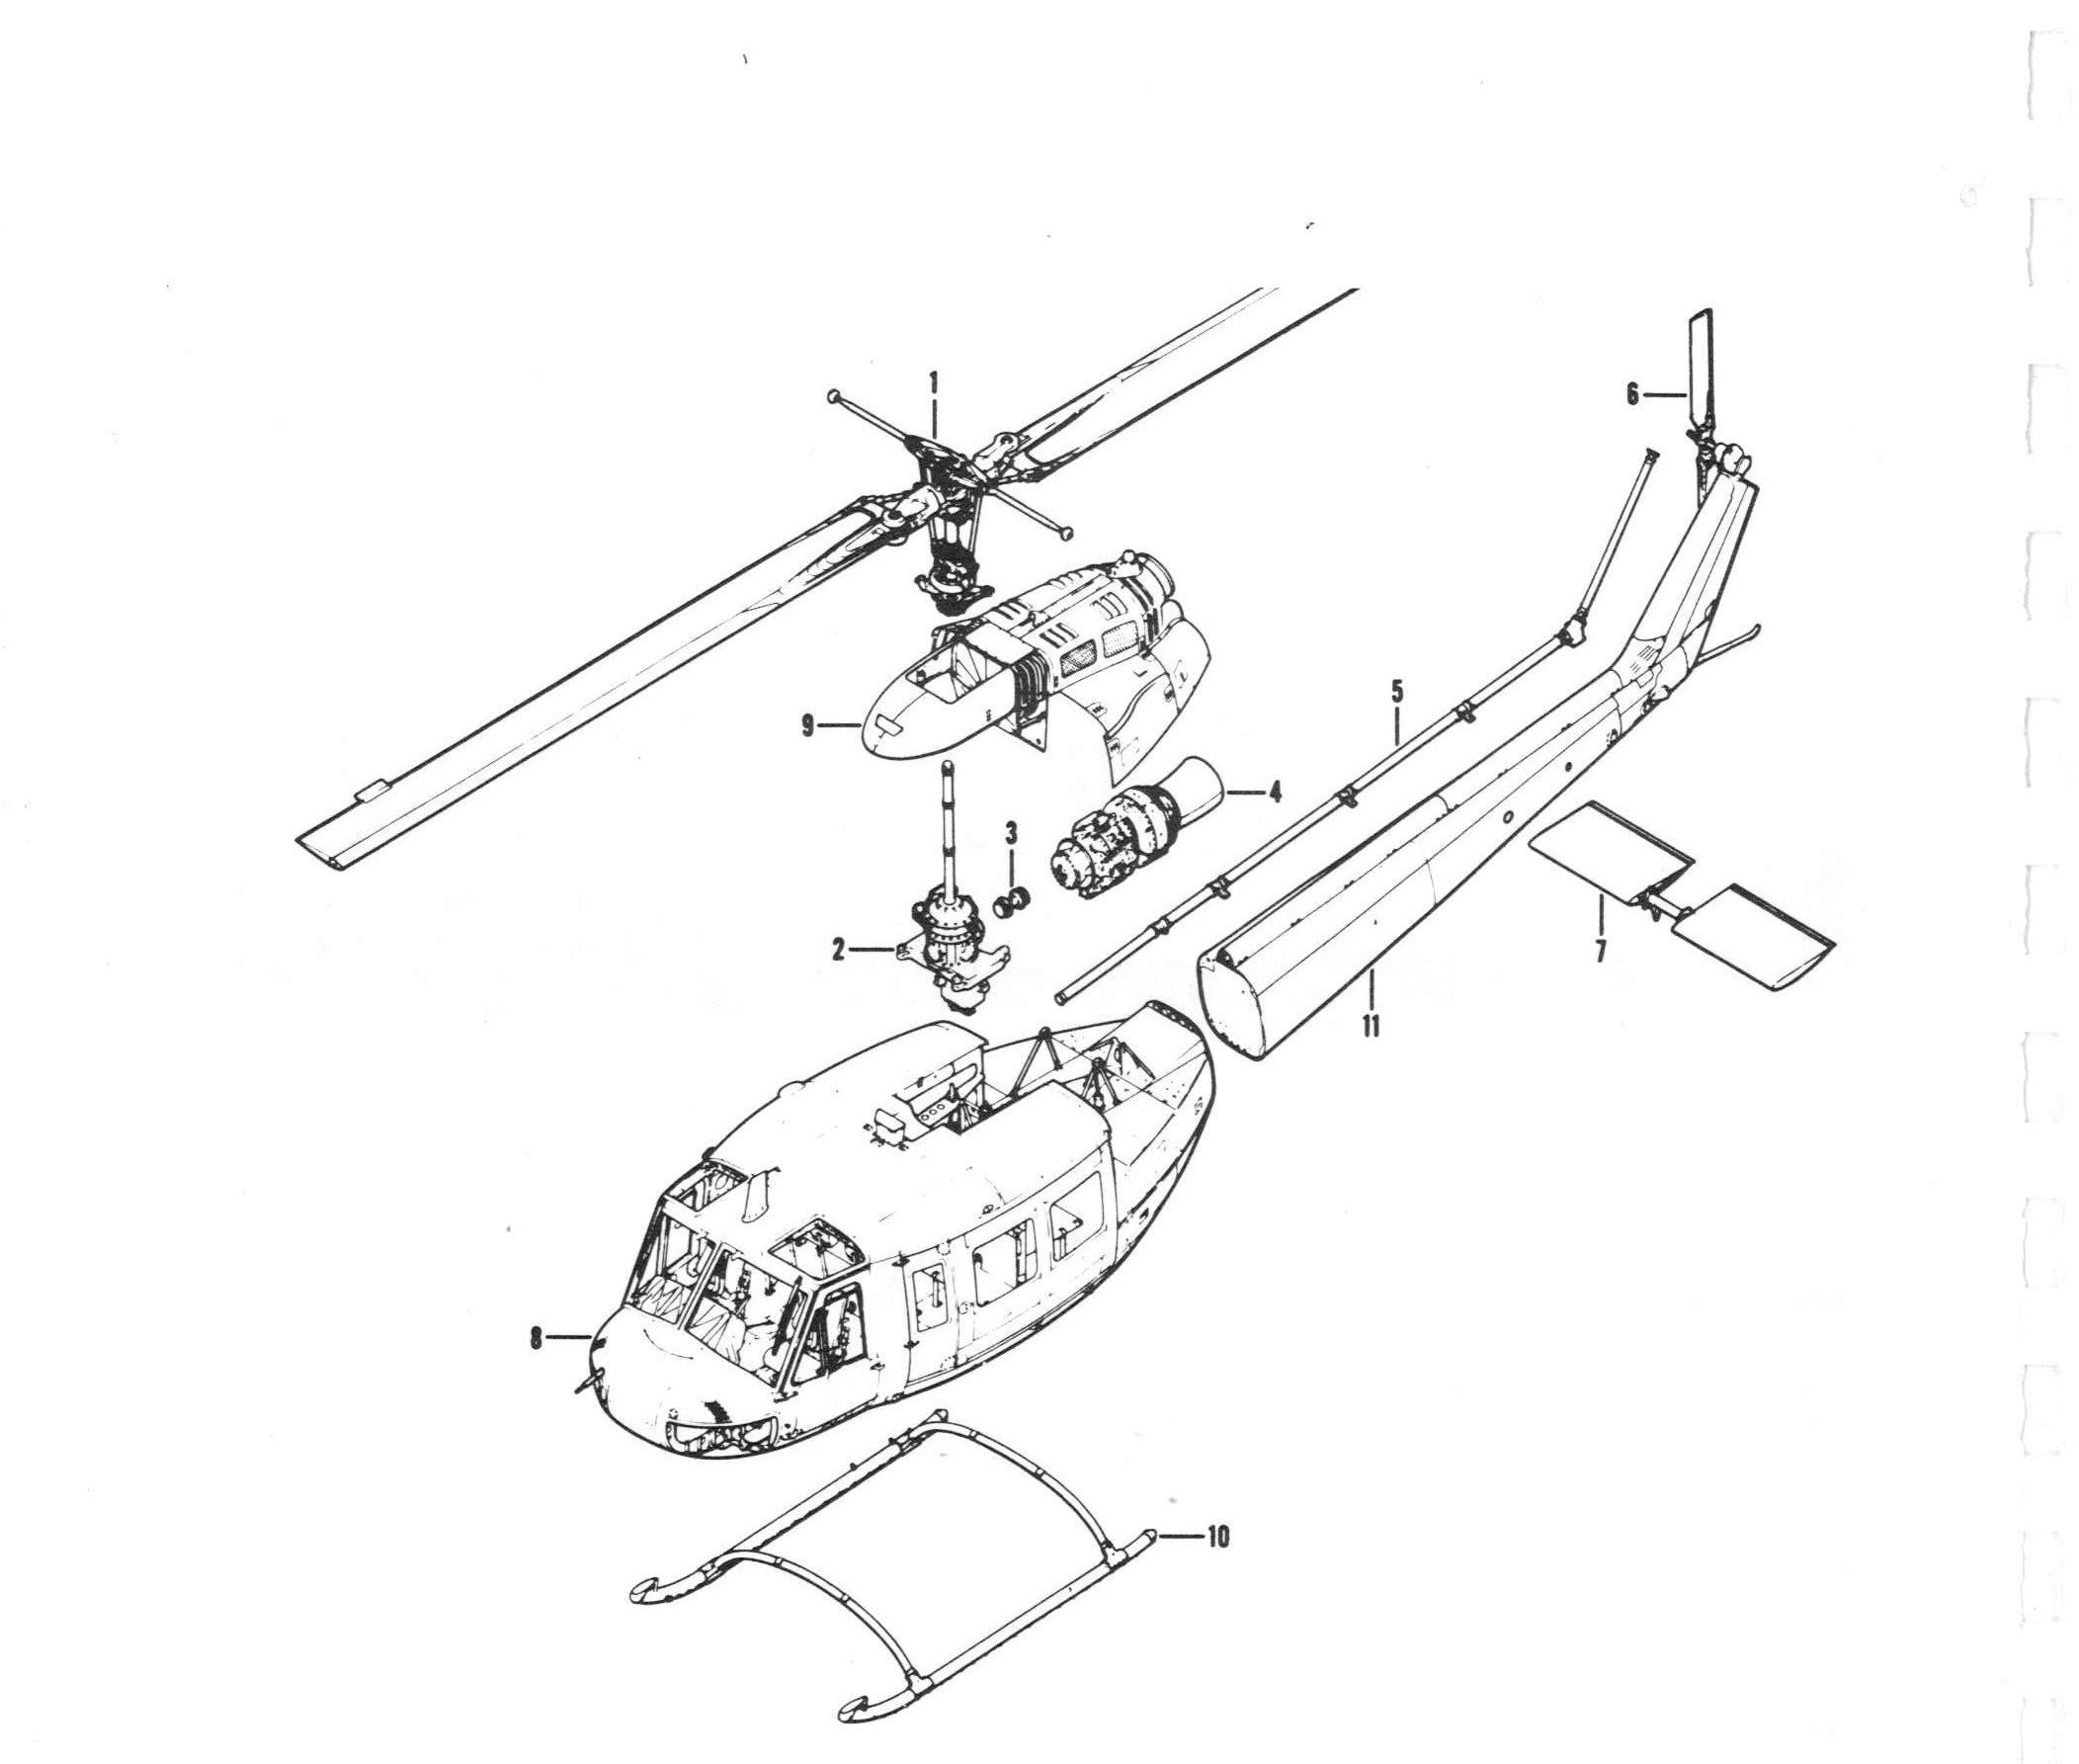 Black Box Diagram Helicopters Free Wiring For You 661 Ford Tractor Harness Bell Model 205a 1 Image Downloads Rh Huey Co Uk Concept Behaviorism